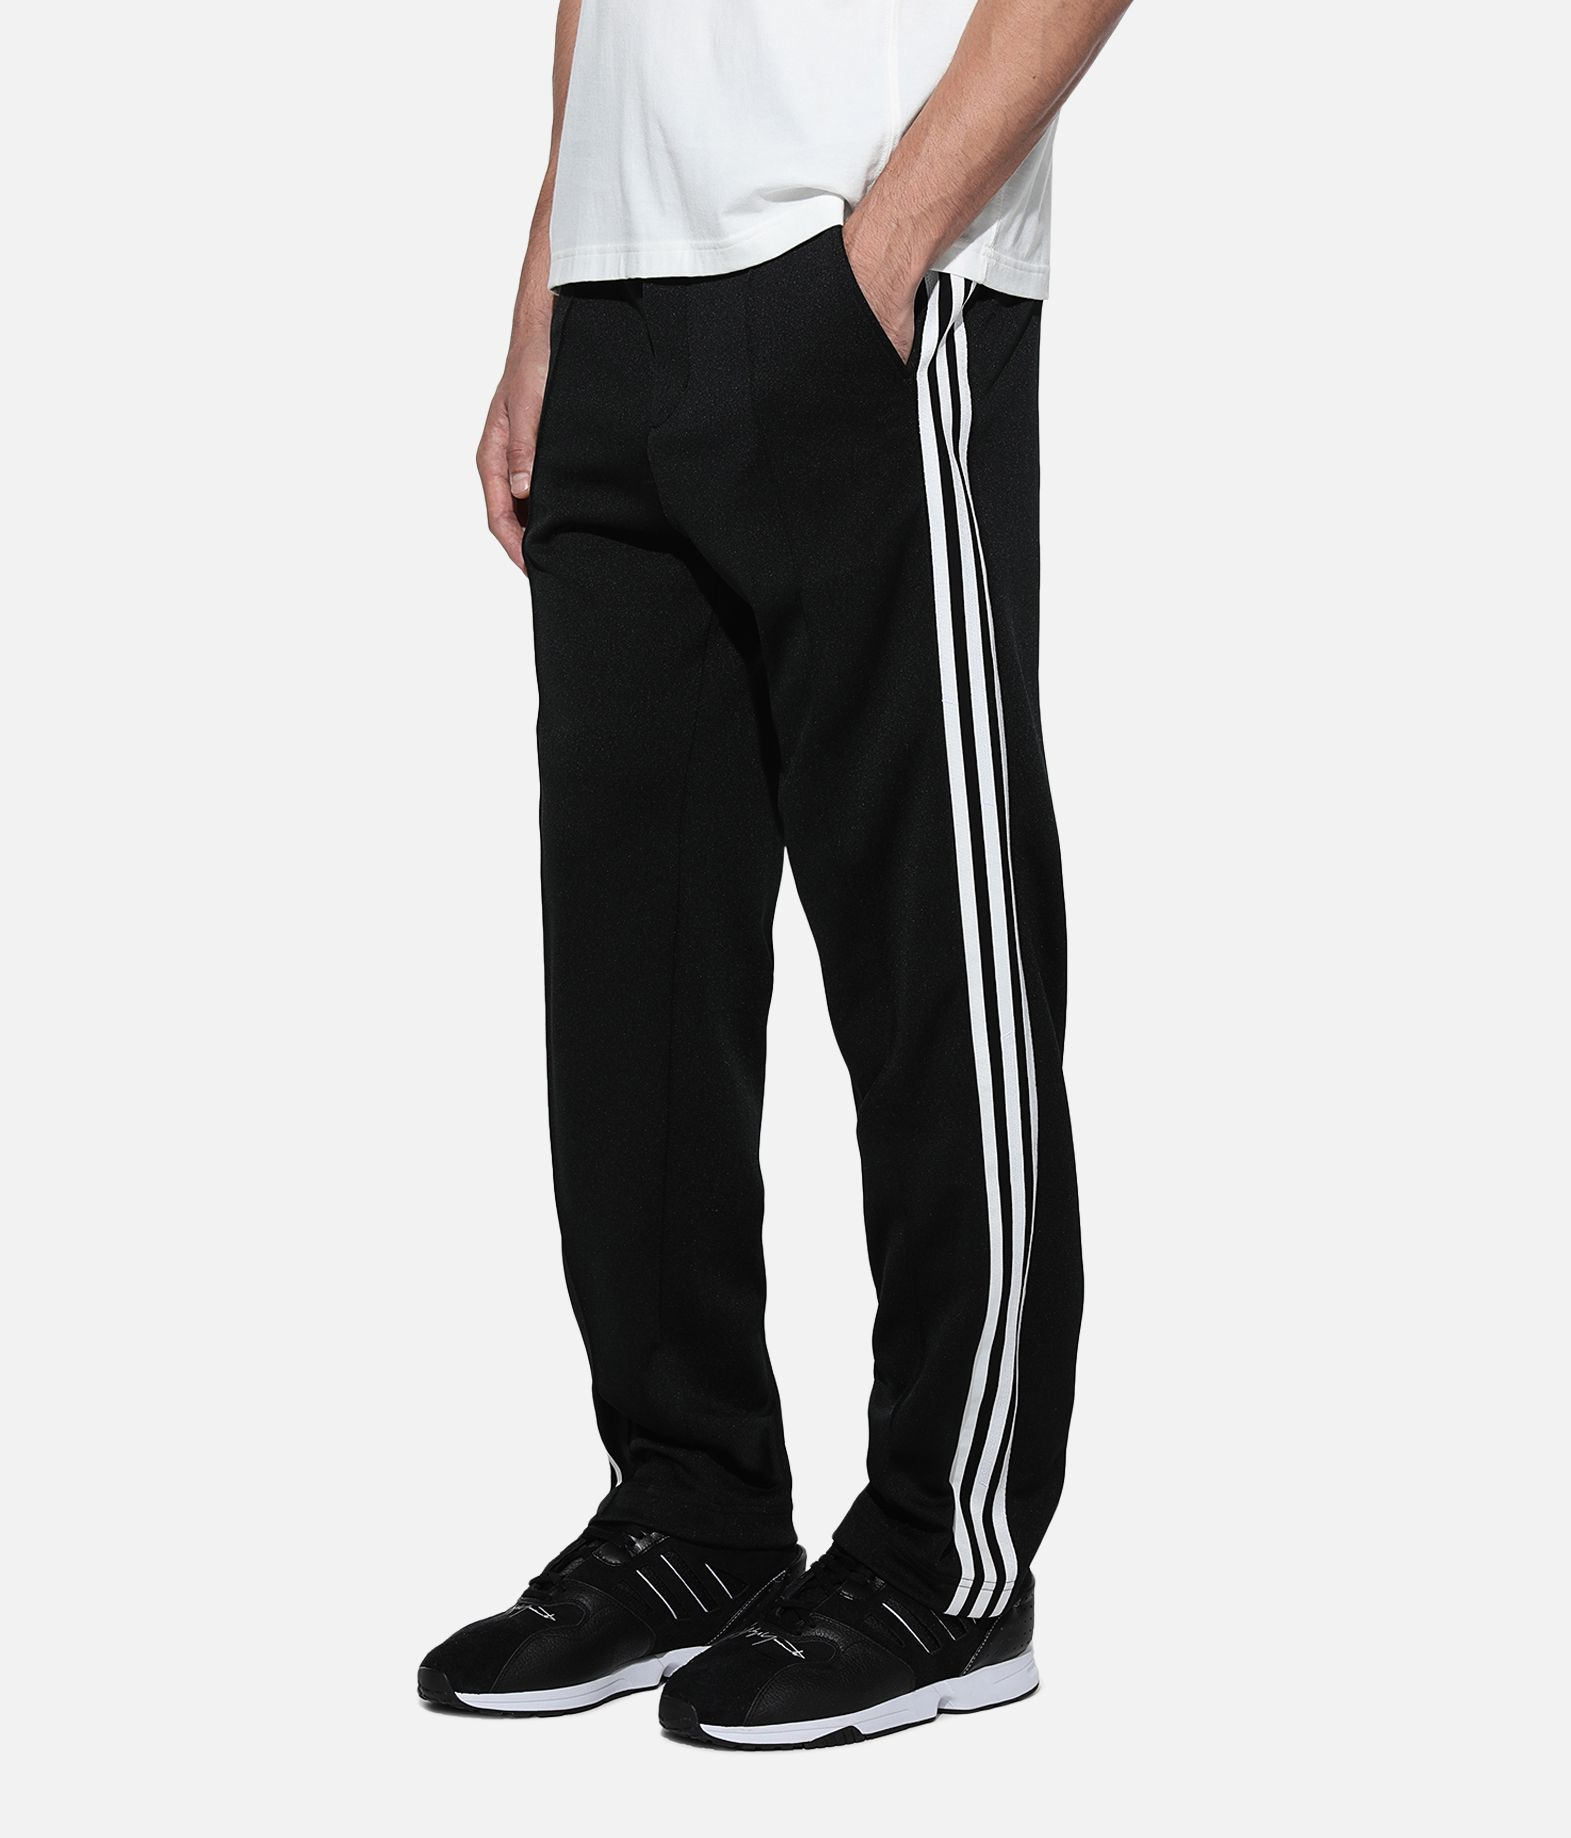 Y-3 Y-3 3-Stripes Track Pants Tracksuit pants Man e